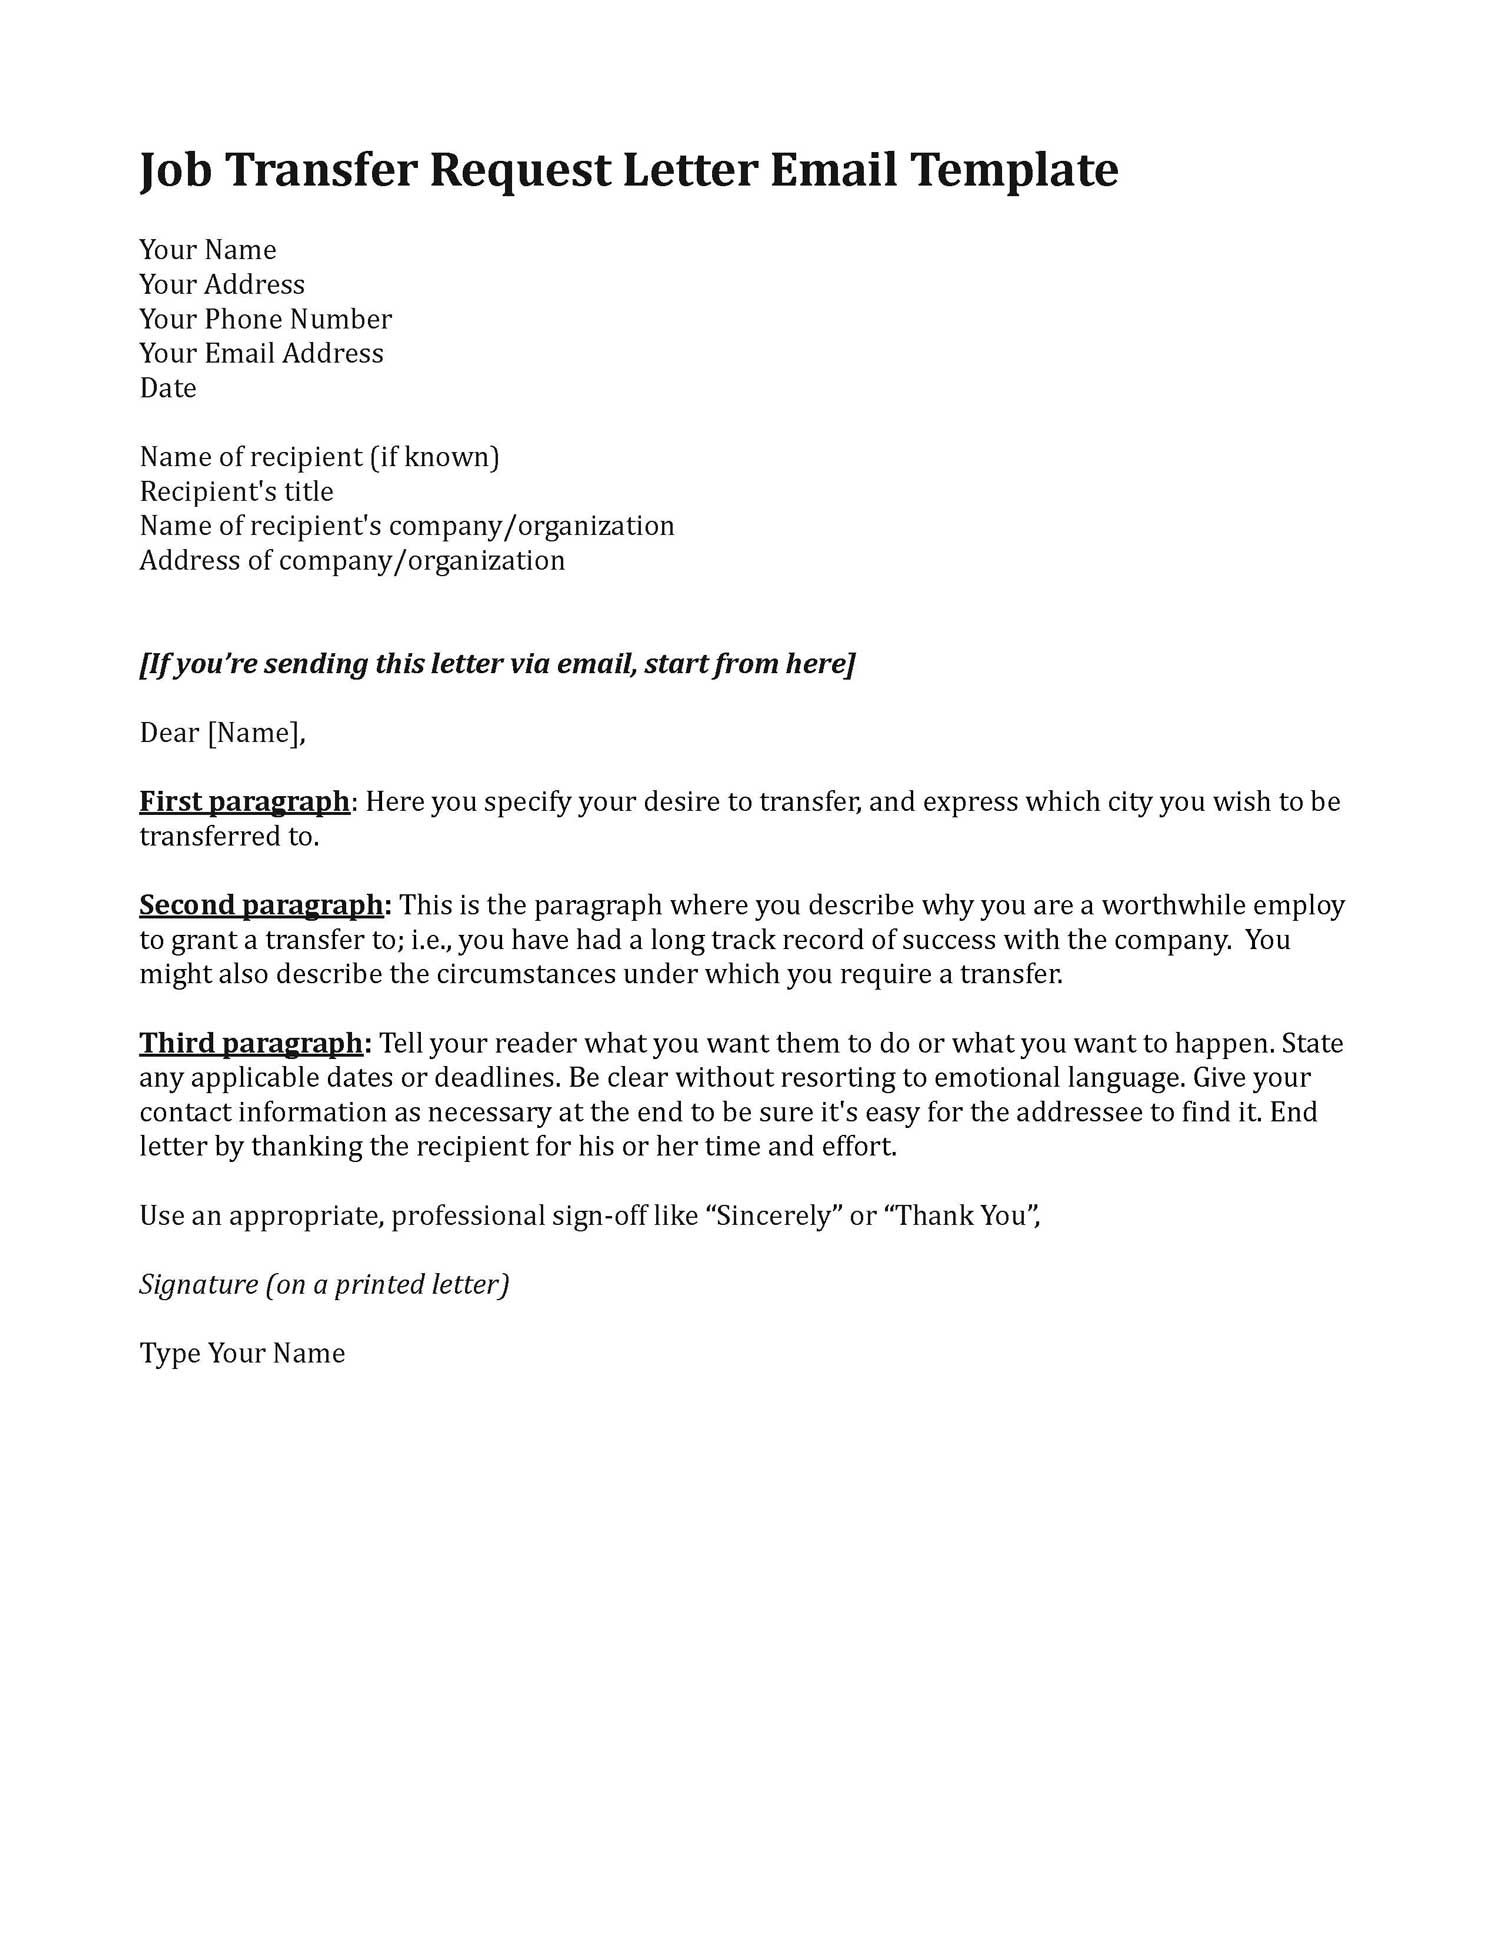 Template for job transfer request letter any suitable for Cover letter for moving to a new city